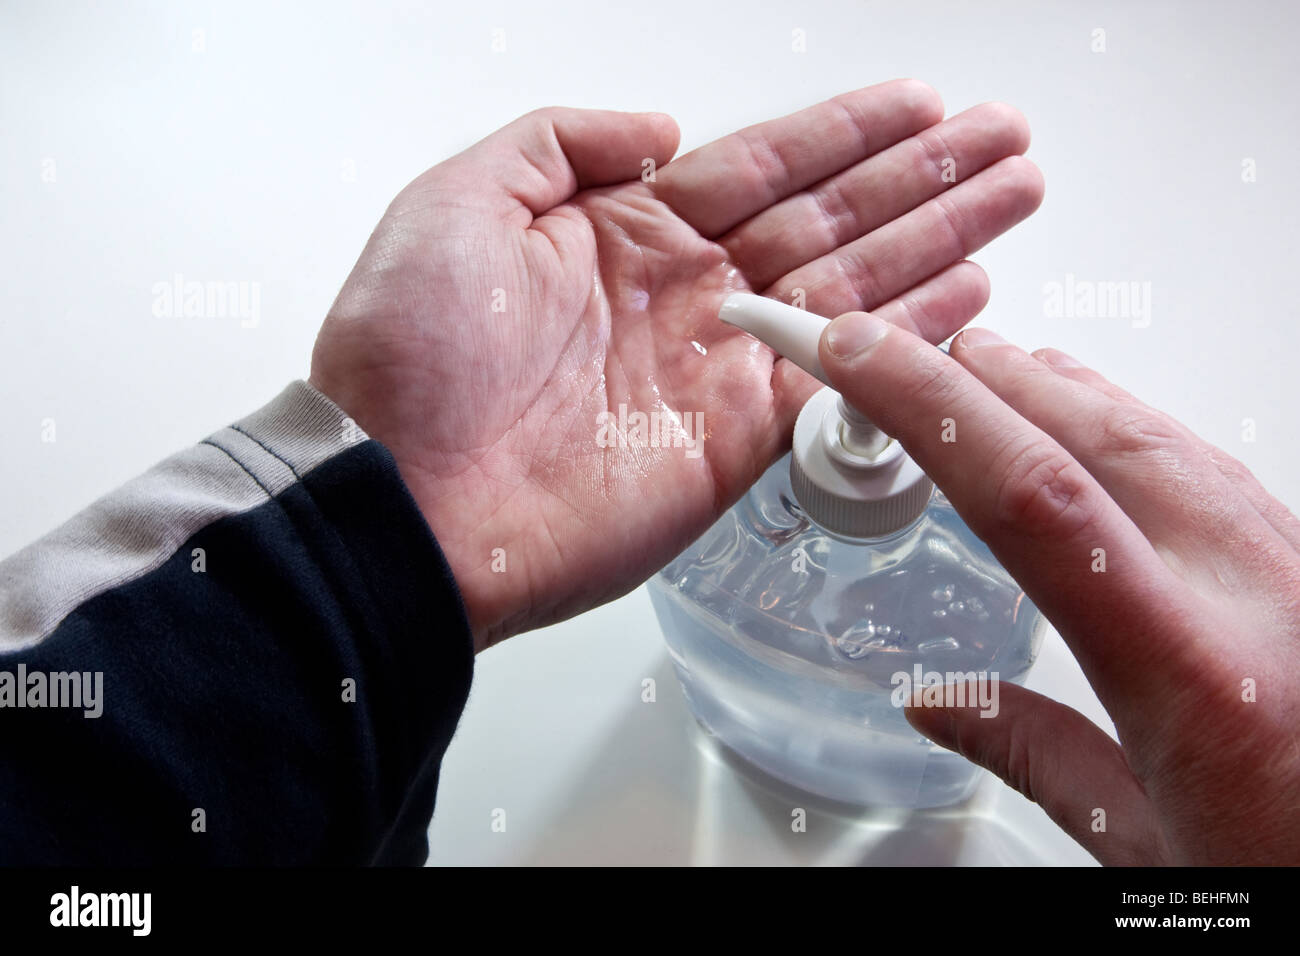 Cleaning hands with antibacterial gel - Stock Image